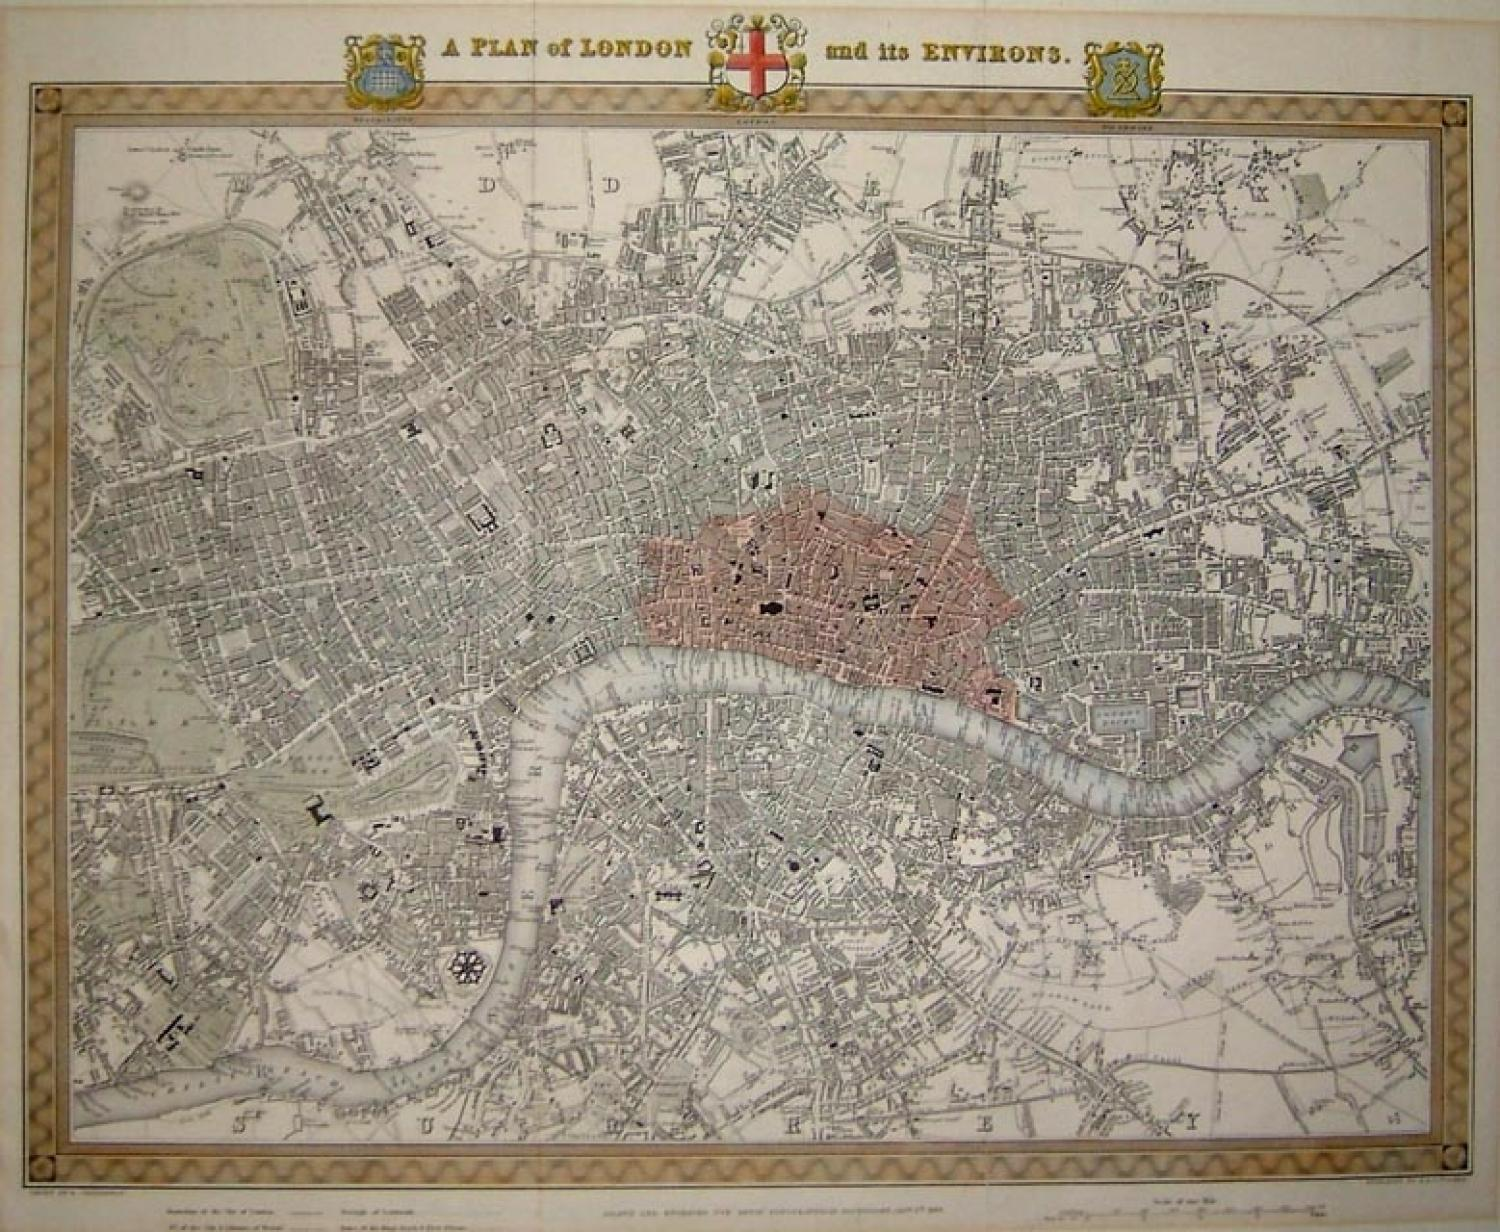 SOLD A Plan of London and its Environs